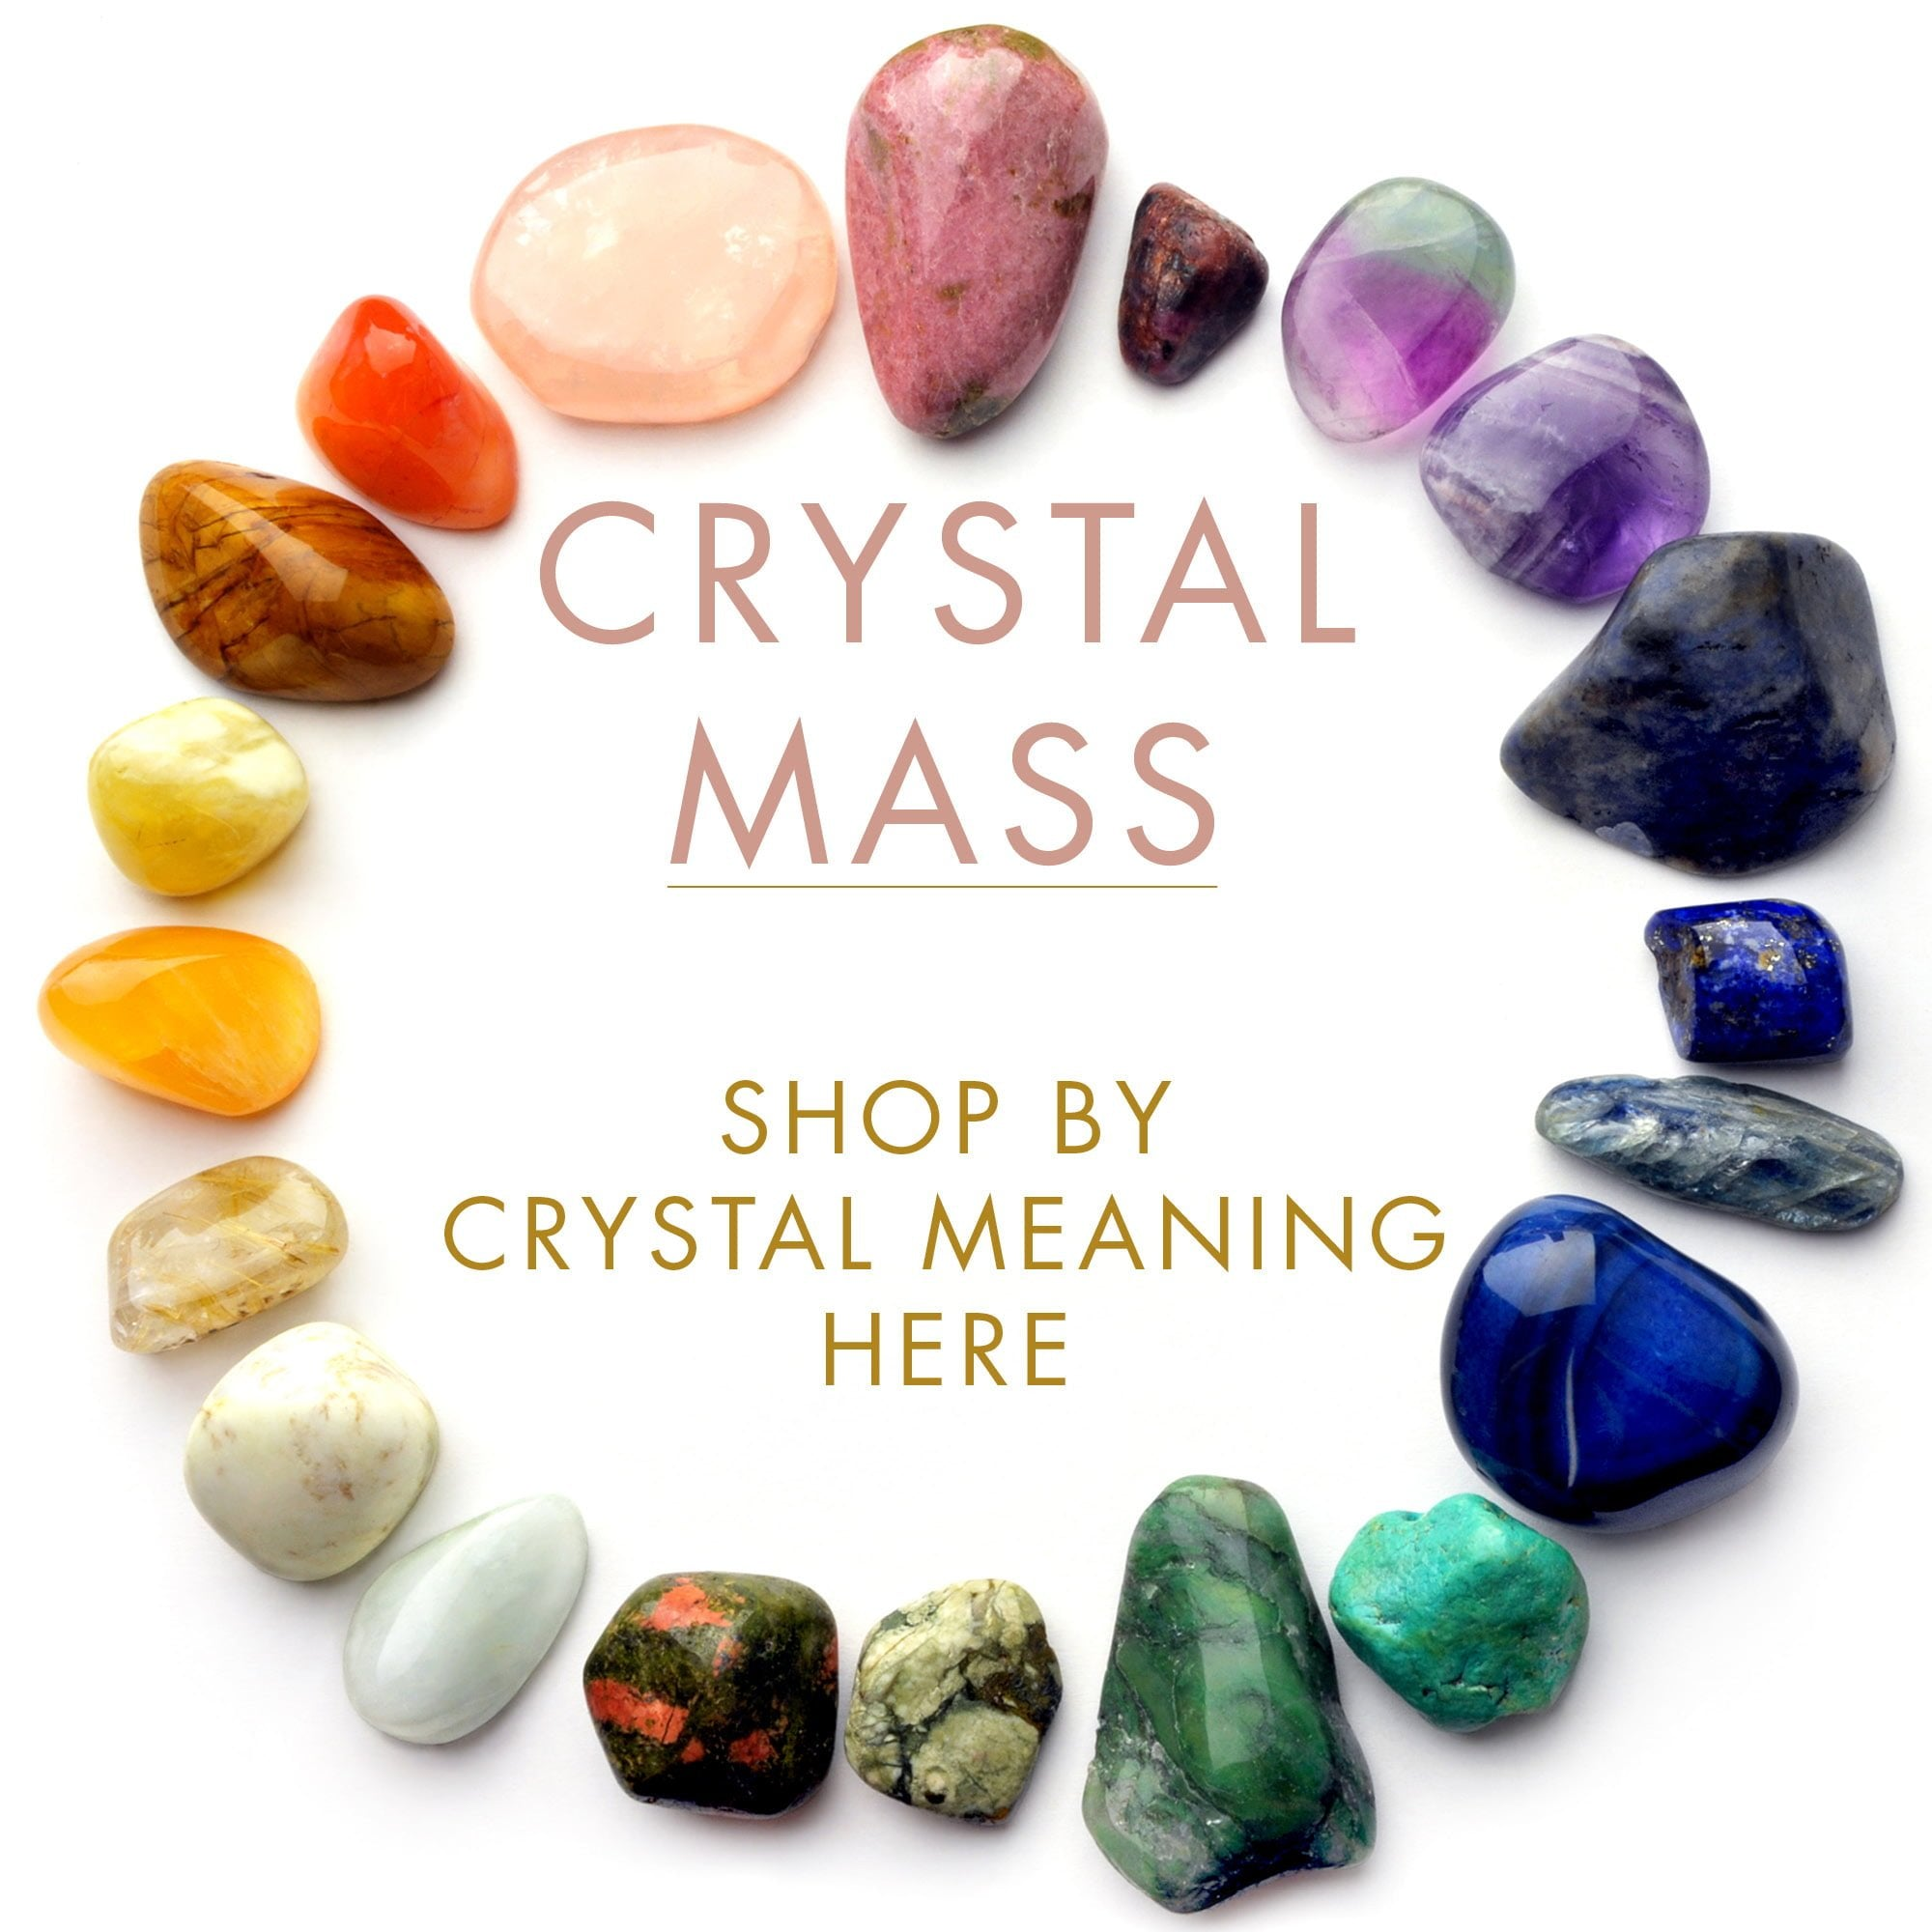 Crytstal Mass - Shop by Crystal Meaning with SVP Jewellery